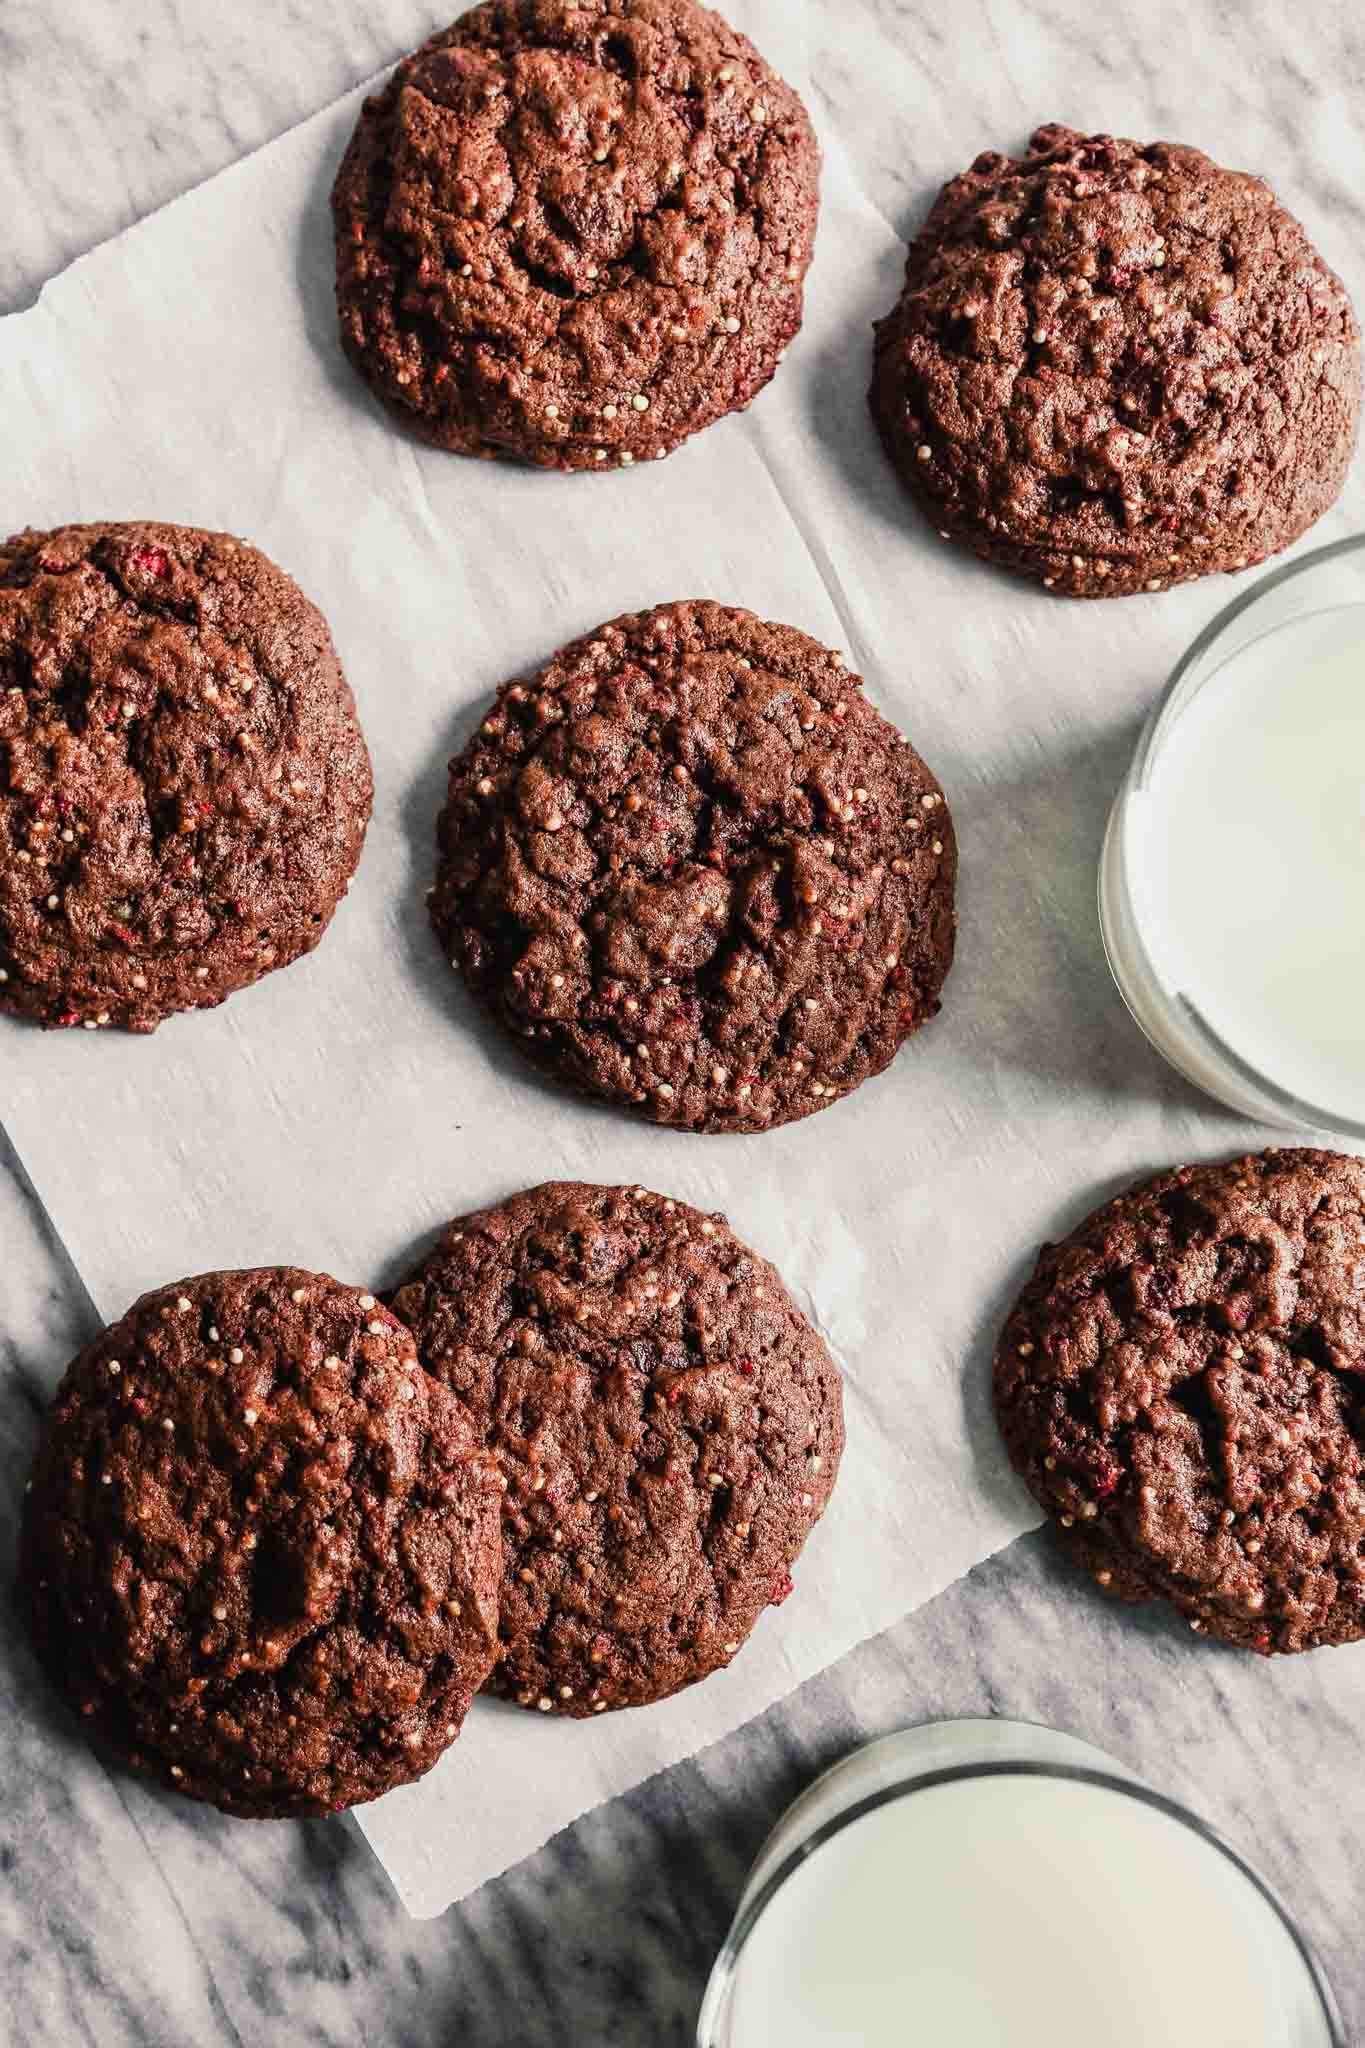 Photograph of chocolate cookies arranged on a piece of parchment paper with glasses of milk set around